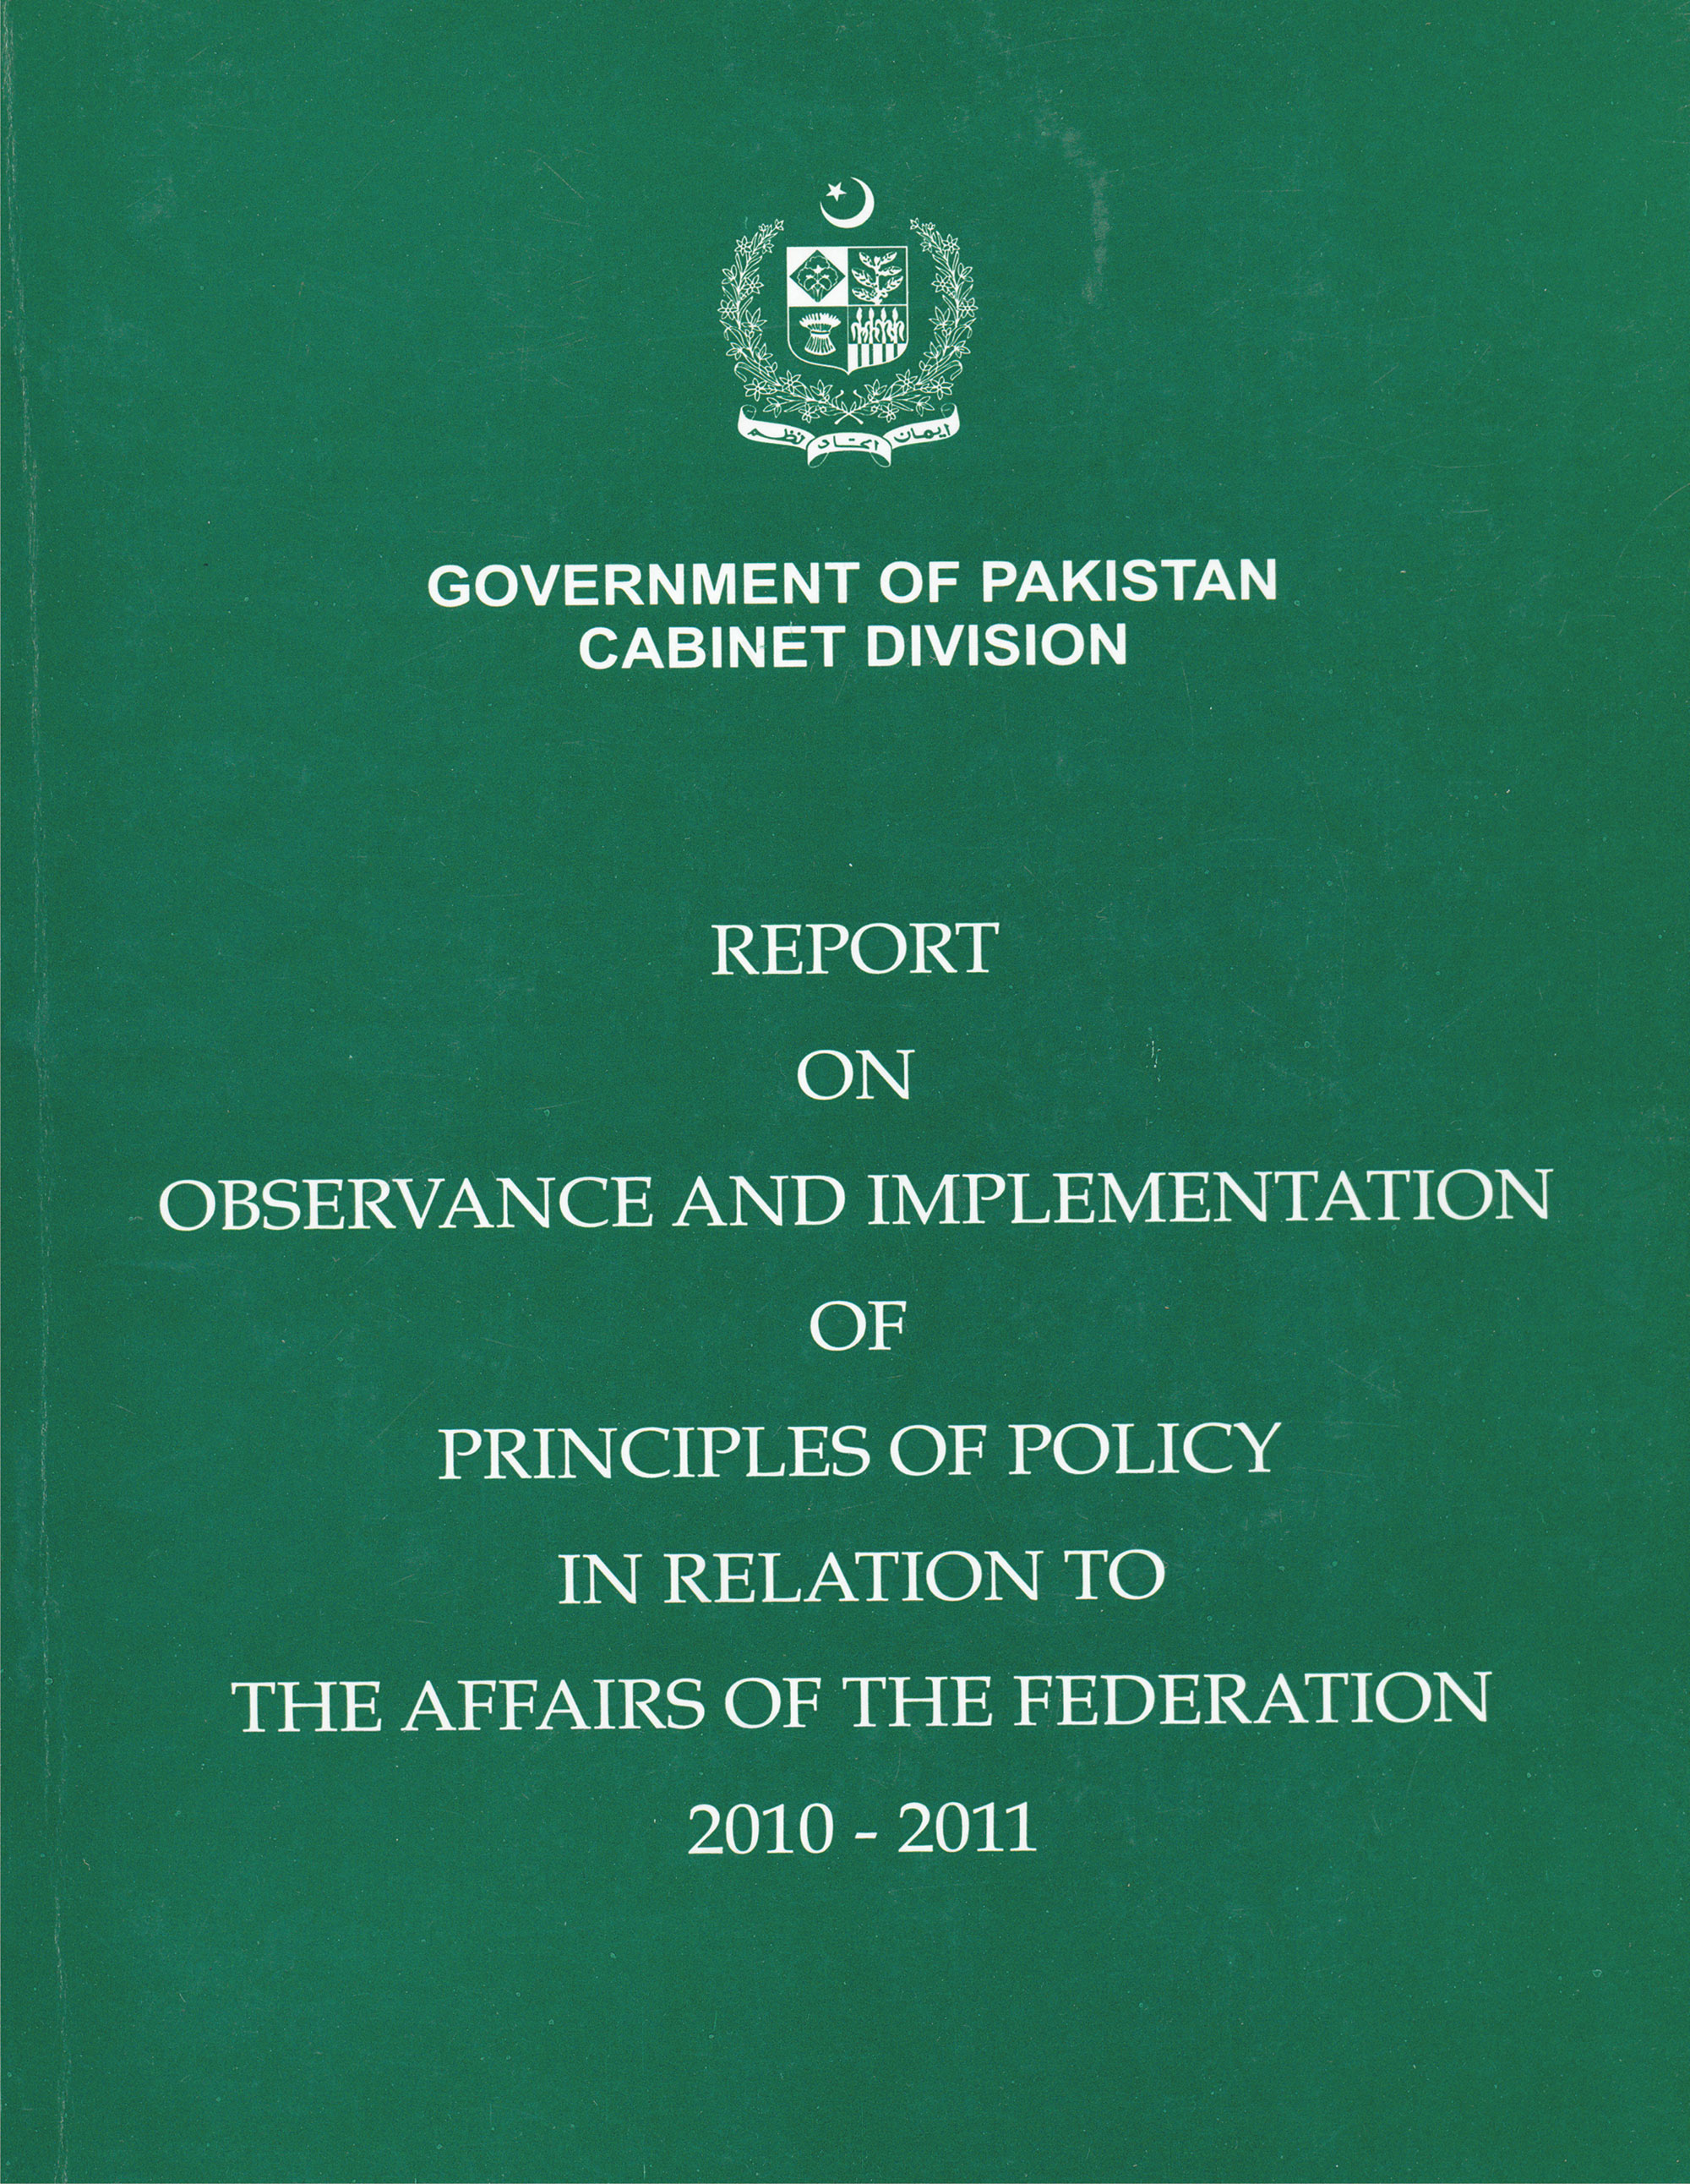 Report on Observance and Implementation of Principles of Policy: An Evaluation